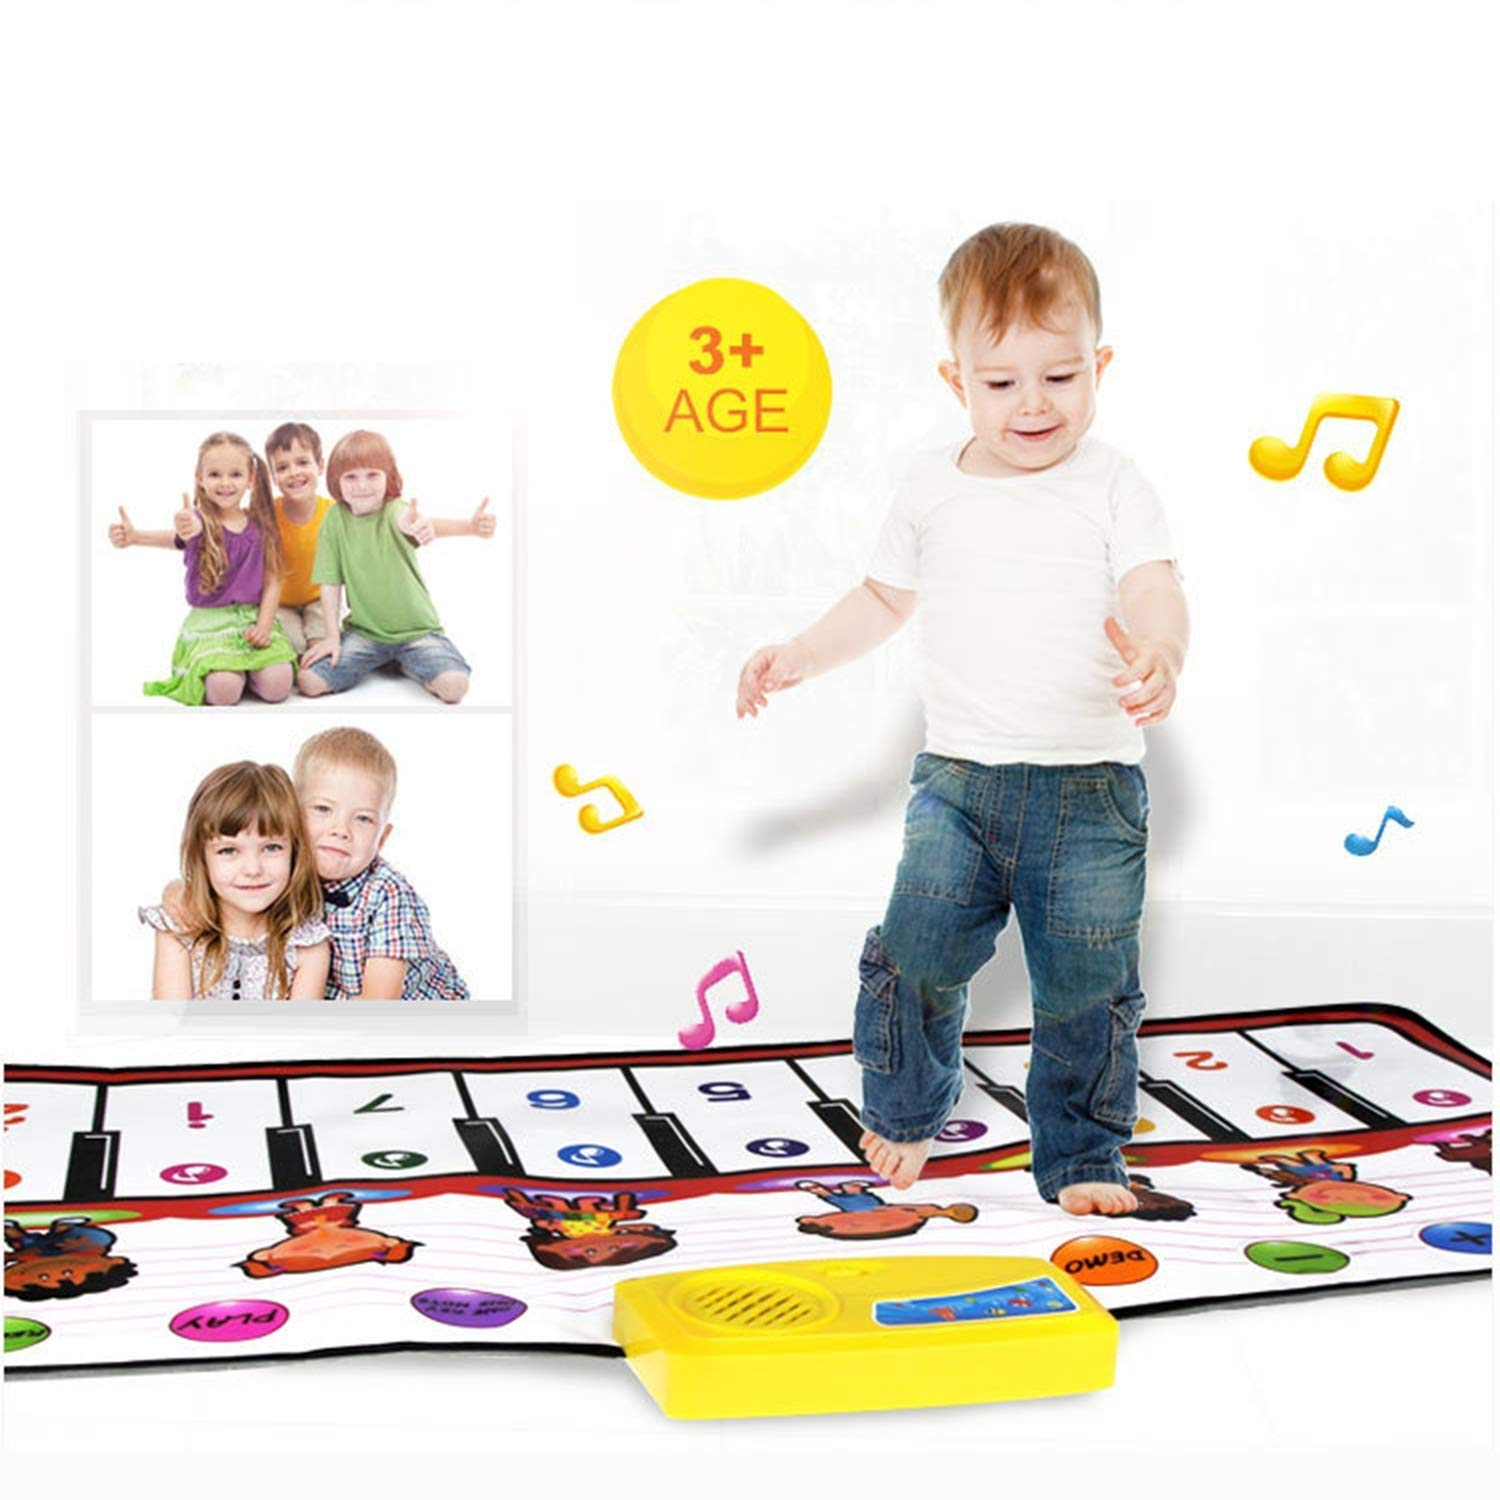 YFQ Crawling Mat Electronic Piano Multi-Function Children's Music Crawling Blanket Game Pad Early Education Toy Mat Environmental Protection Educational Toys by YFQ (Image #2)